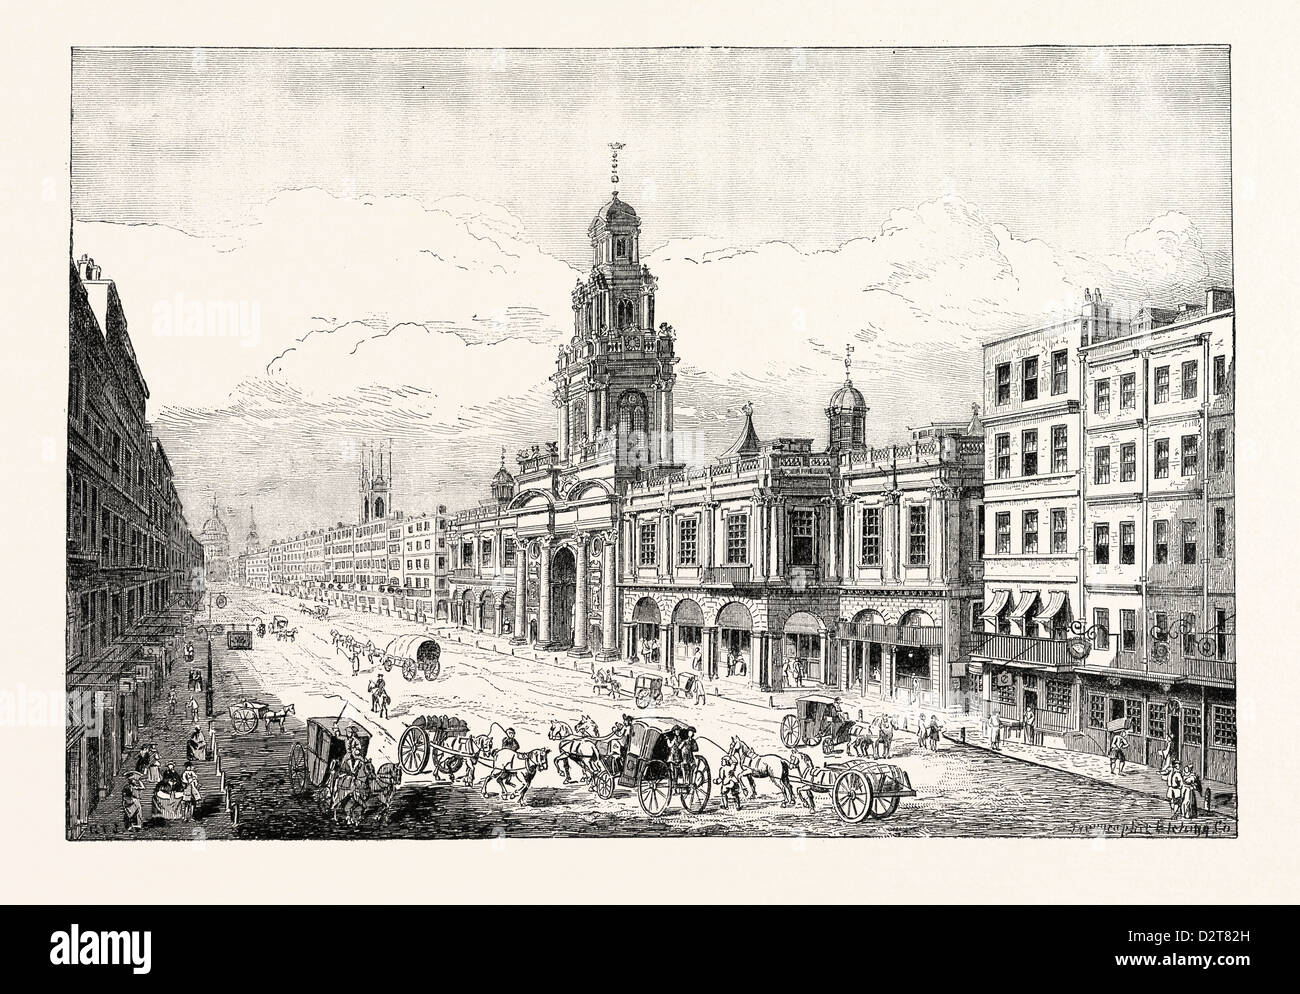 THE SECOND ROYAL EXCHANGE CORNHILL LONDON - Stock Image